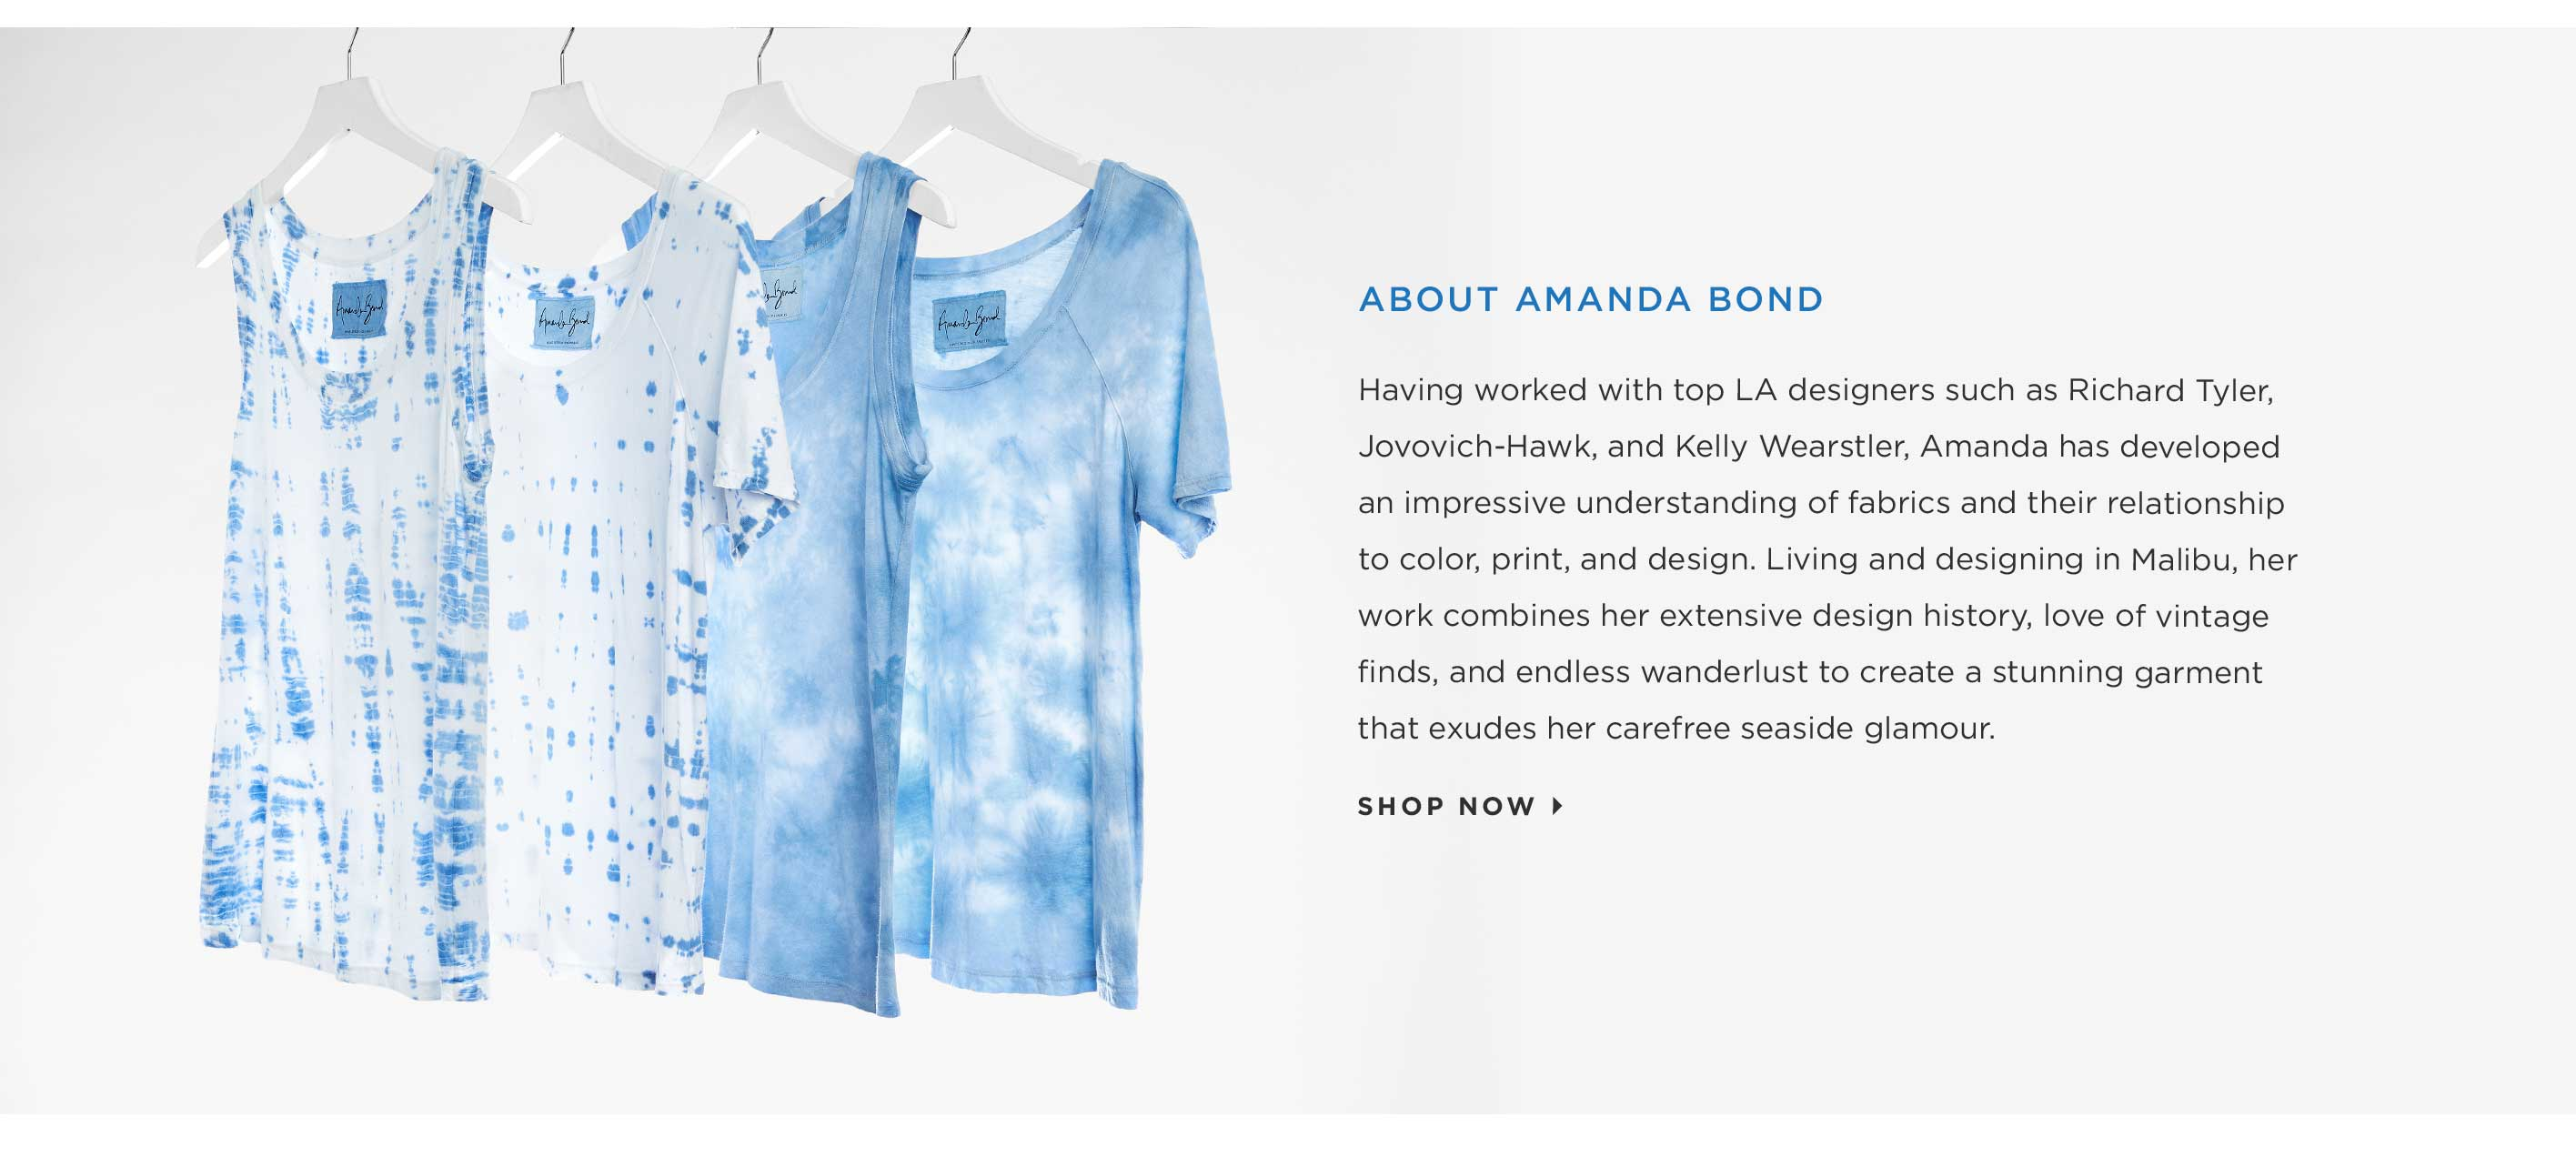 About Amanda Bond - Having worked with top LA designers such as Richard Tyler, Jovovich-Hawk, and Kelly Wearstler, Amanda has developed an impressive understanding of fabrics and their relationship to color, print, and design. Living and designing in Mali